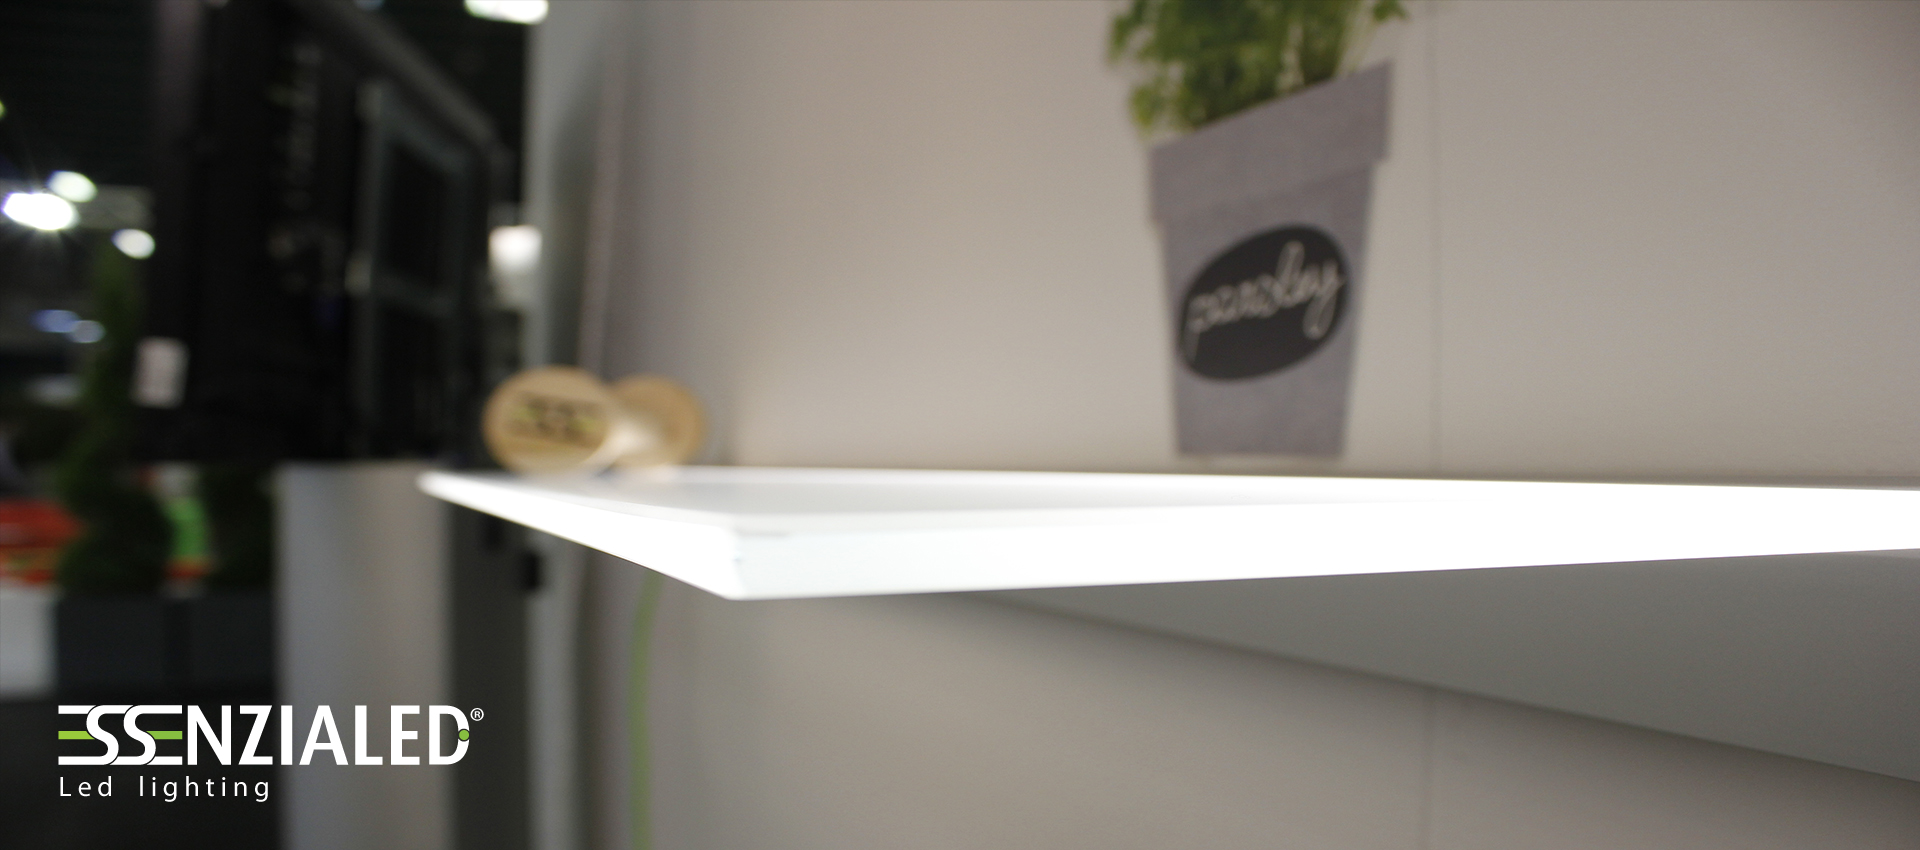 Mensole luminose a led su misura fino a 2 5mtessenzialed for Mensole luminose ikea